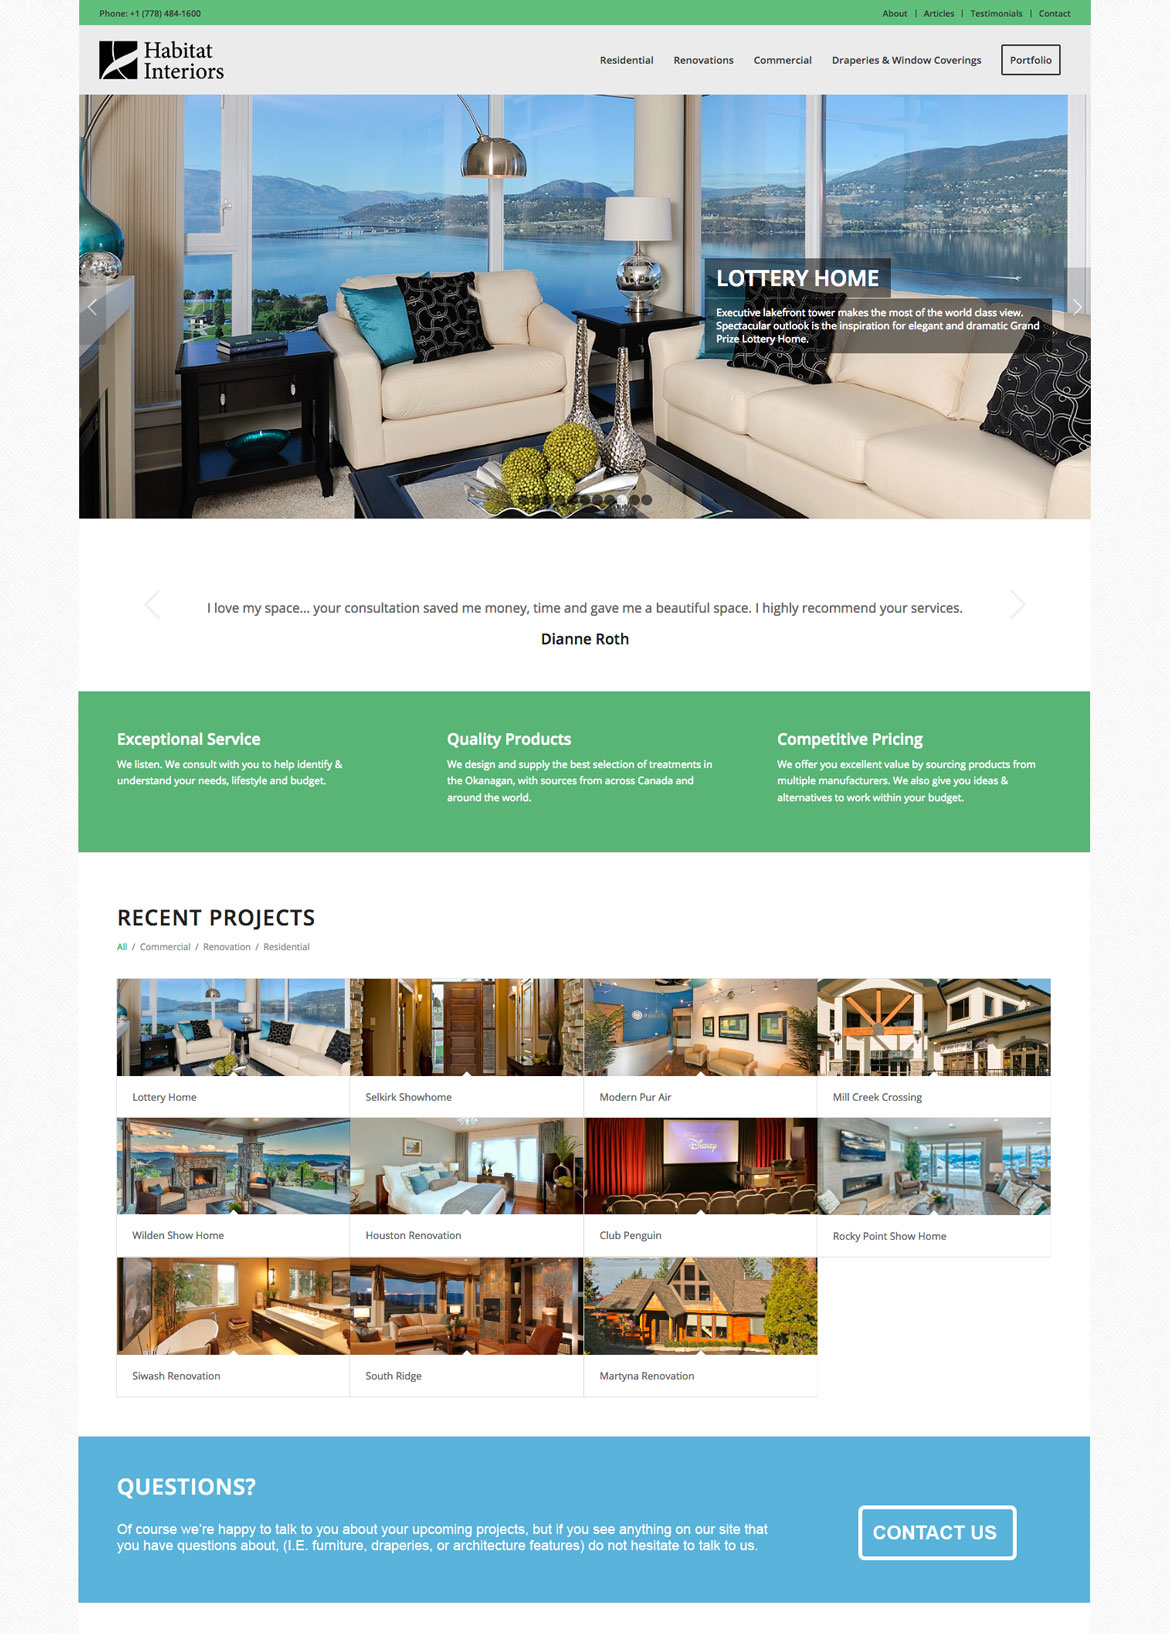 Habitat Interiors - Website design